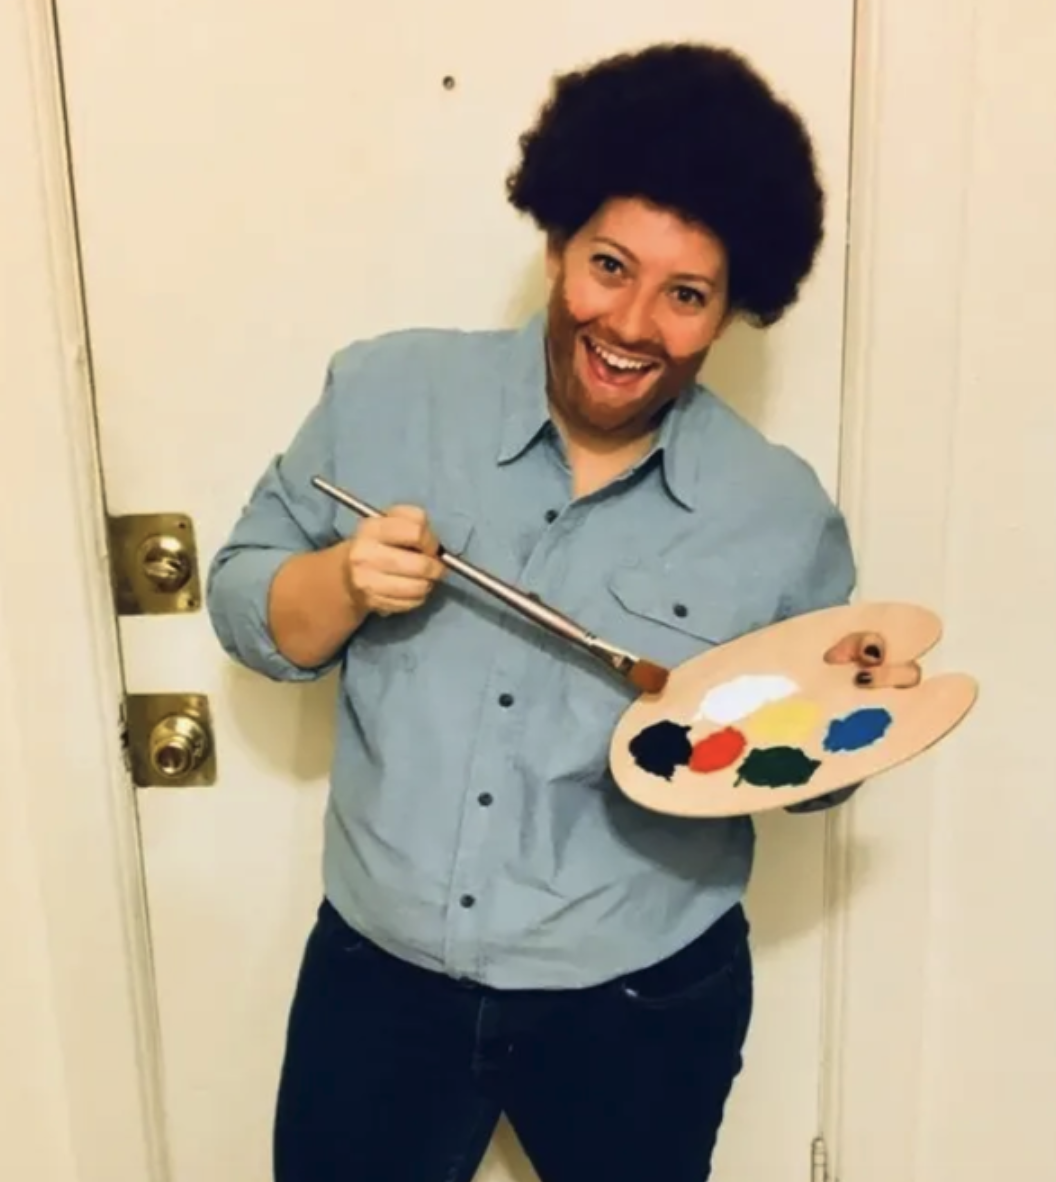 Someone with an afro, beard, and blue dress shit while holding a painting easel